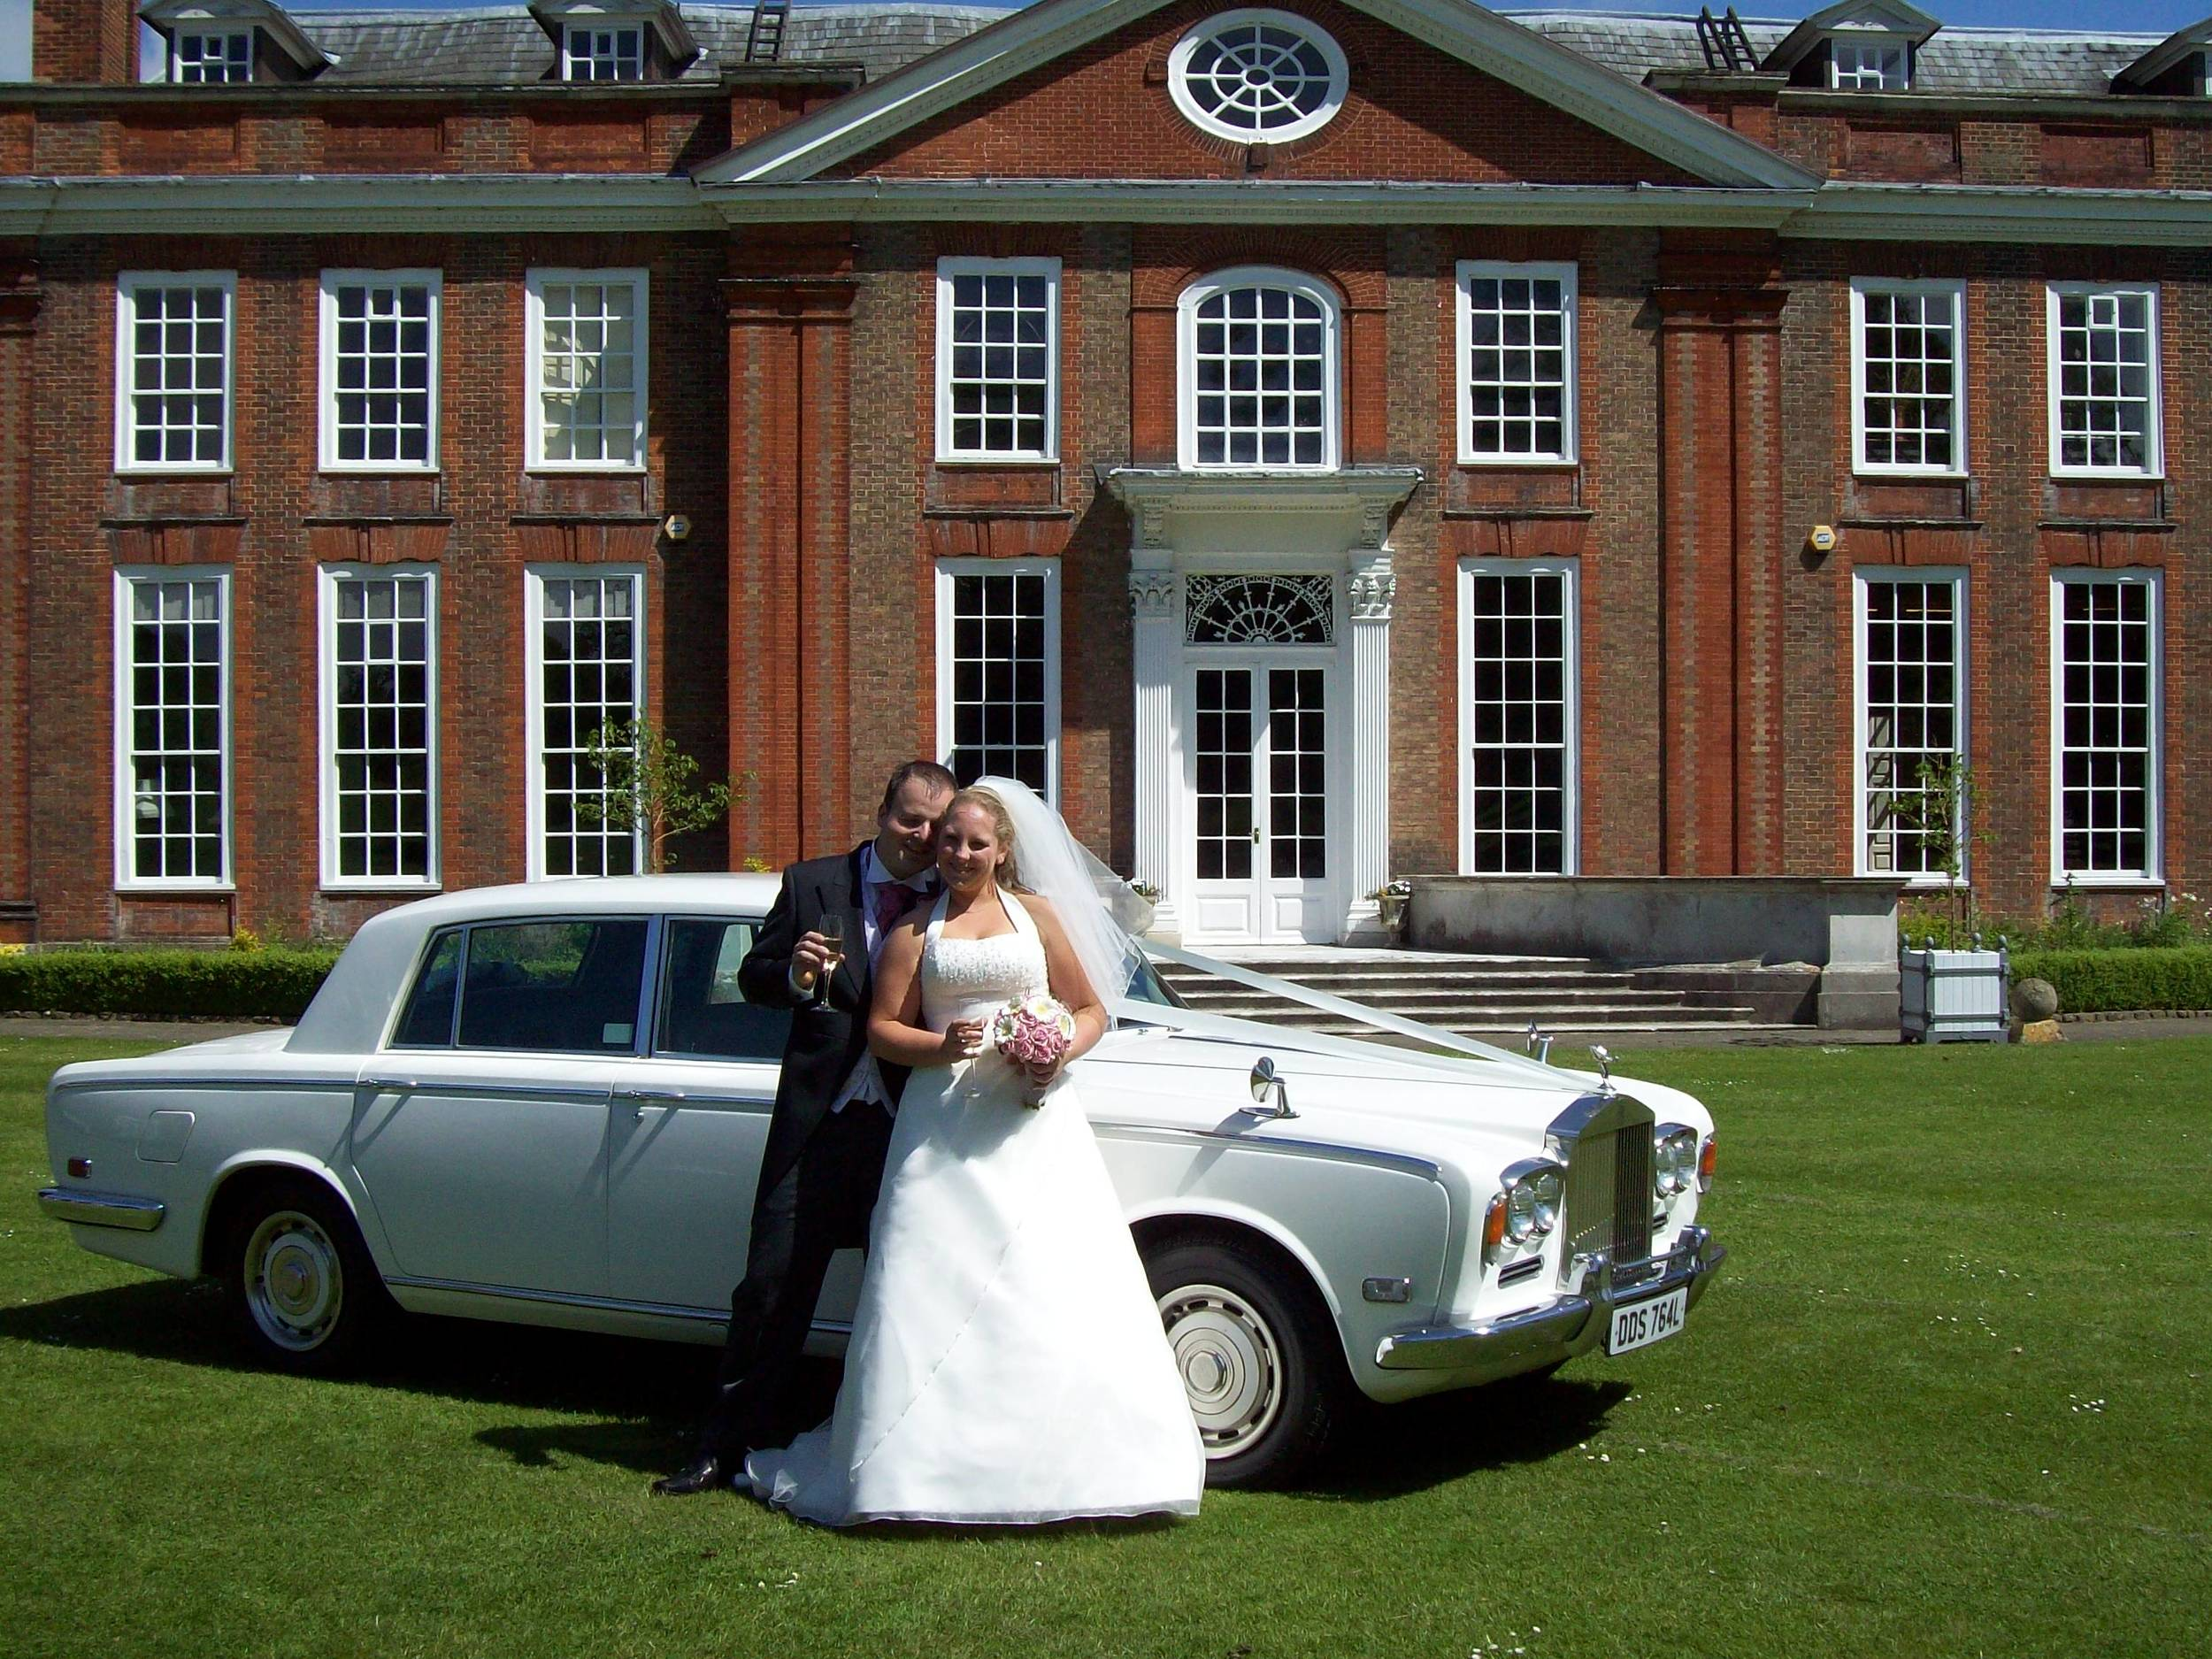 White Rolls Royce wedding car for Lauren & Joe's wedding at Bradbourne House in Maidstone.